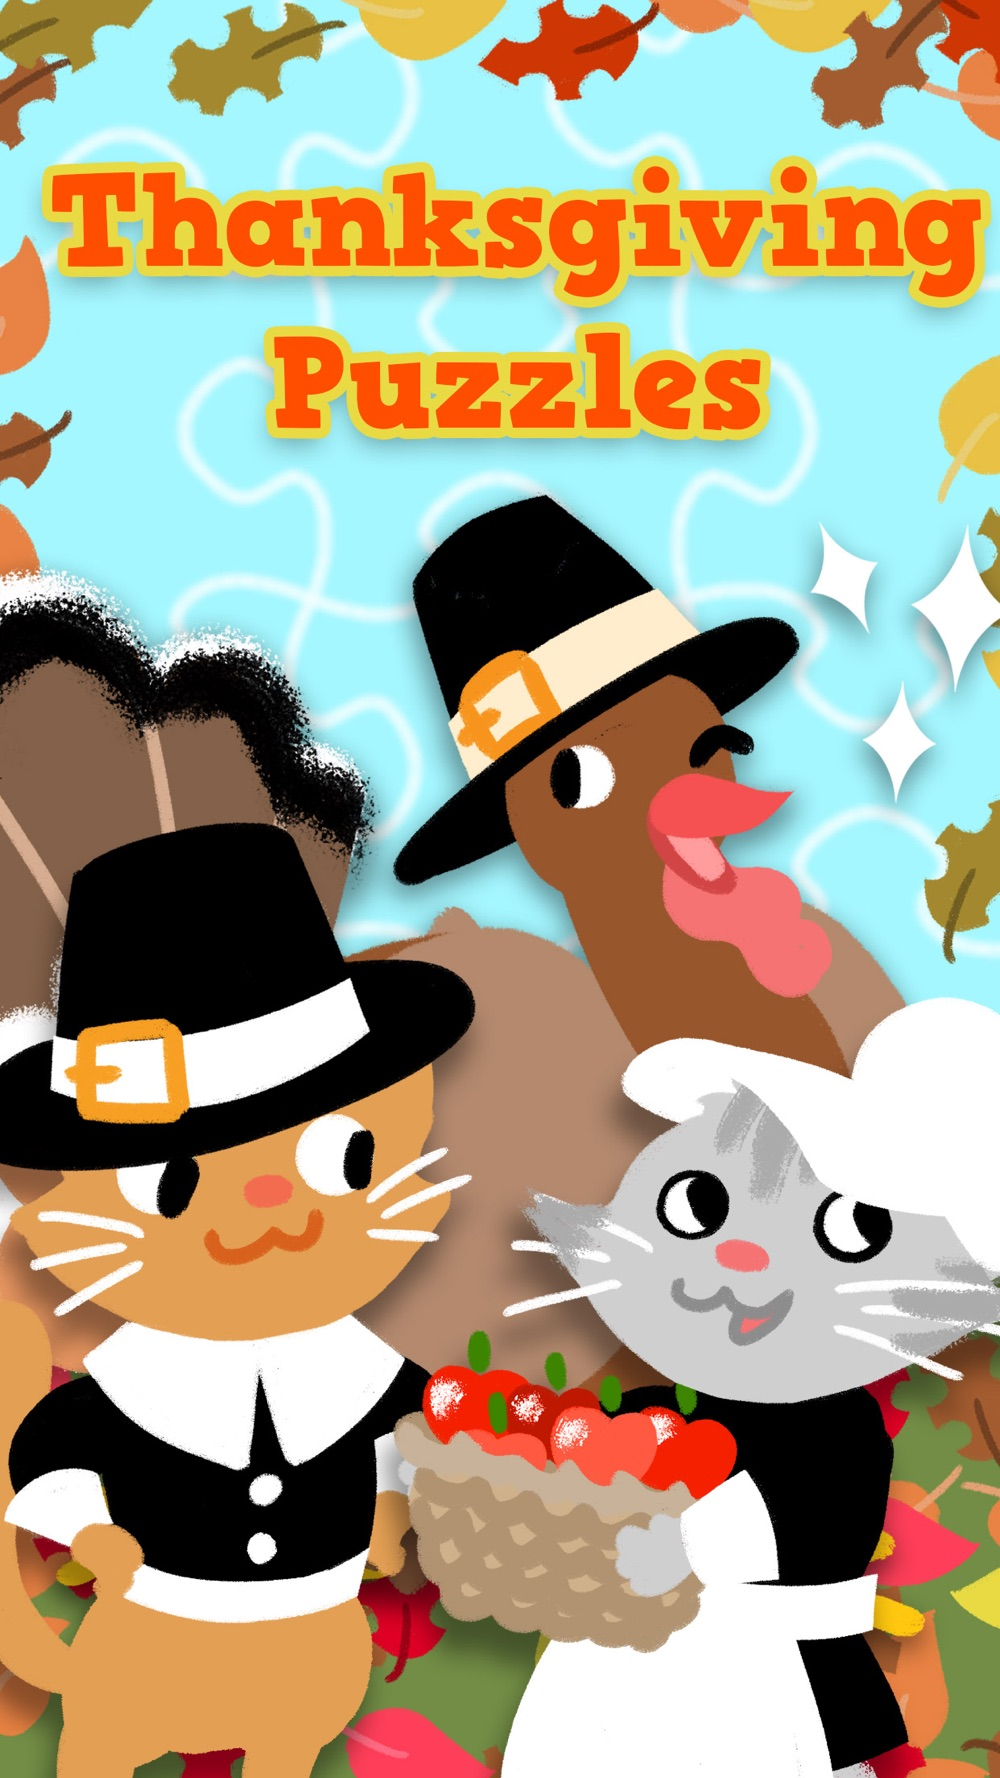 Thanksgiving Puzzles – Fall Holiday Games for Kids cheat codes